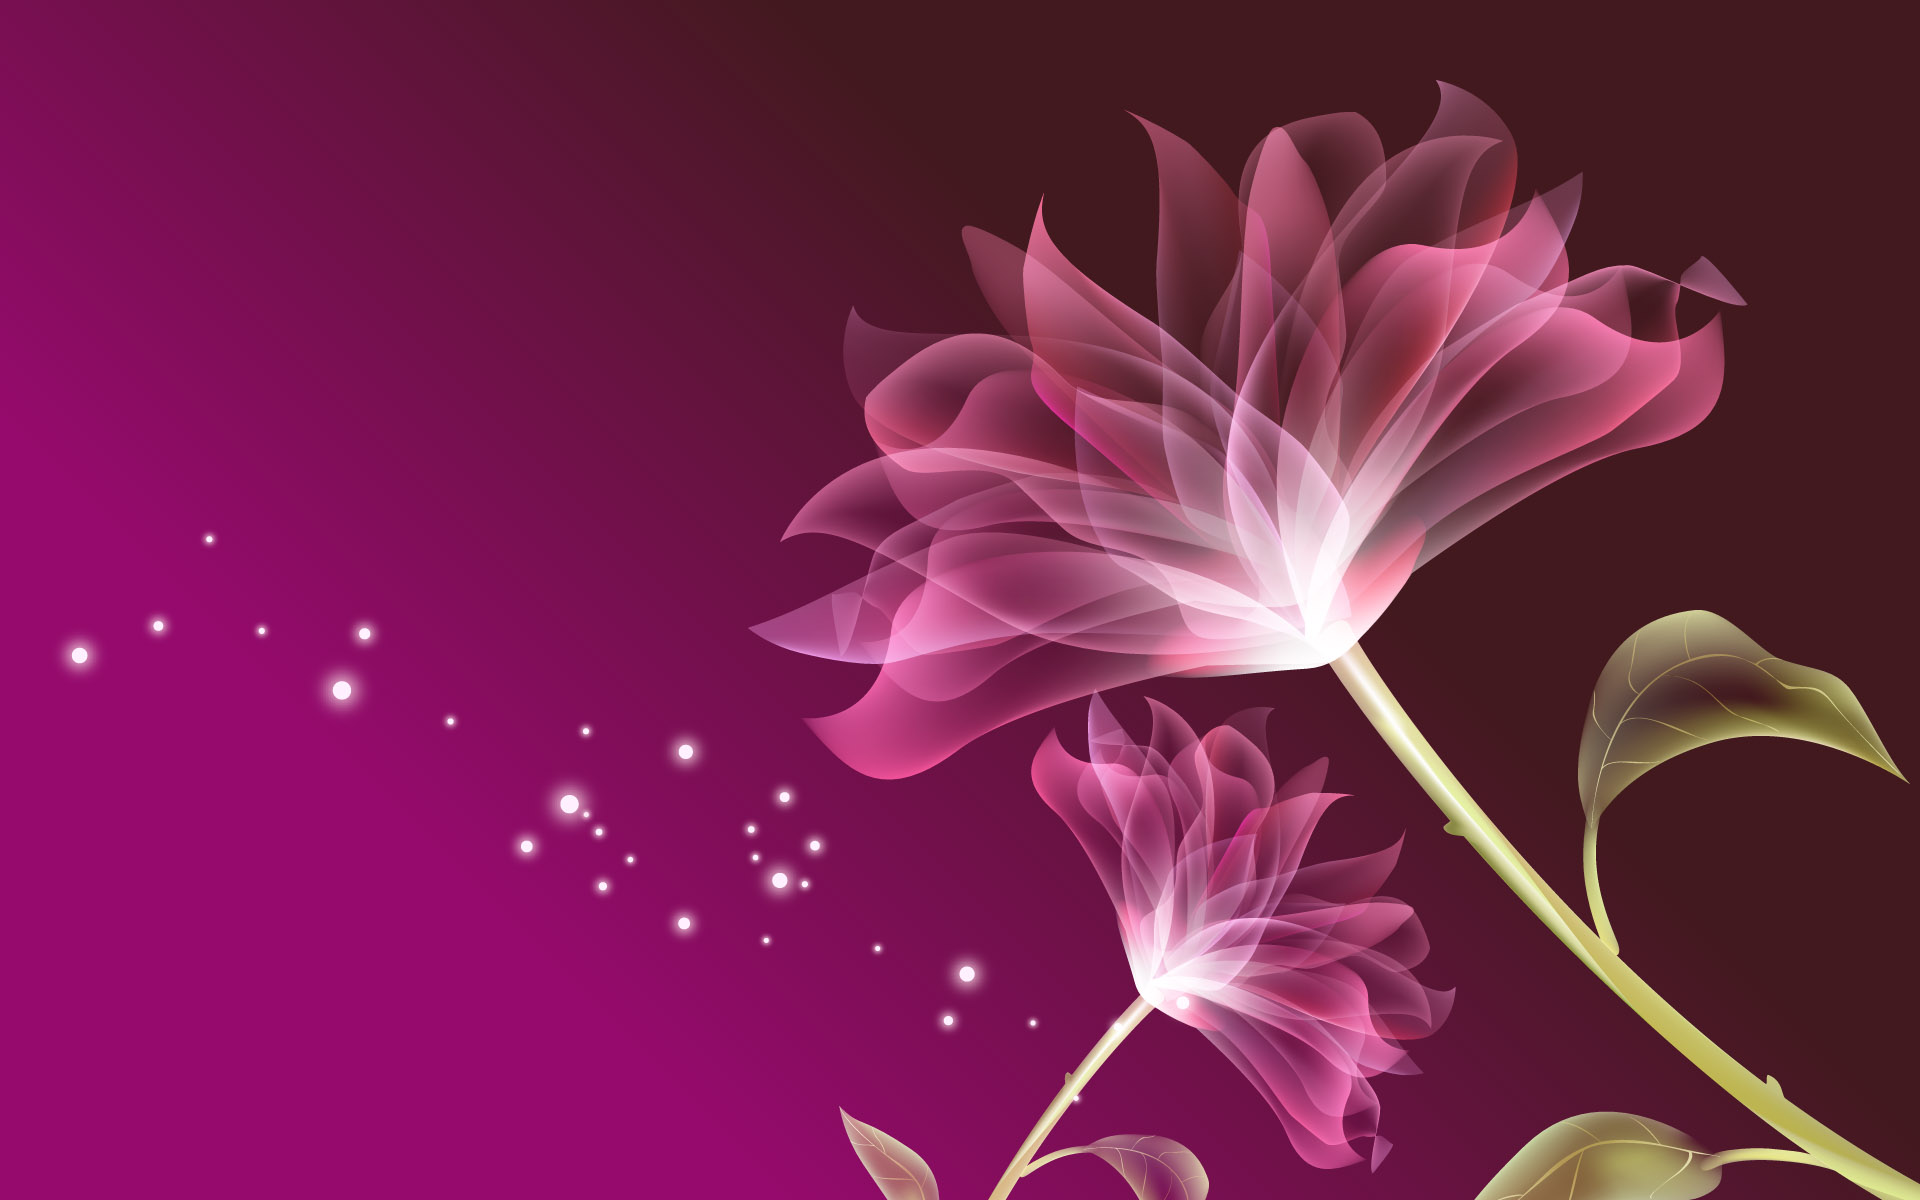 Pink flowers wallpapers wallpapersafari pink flowers 3d wallpaper background dhlflorist Choice Image